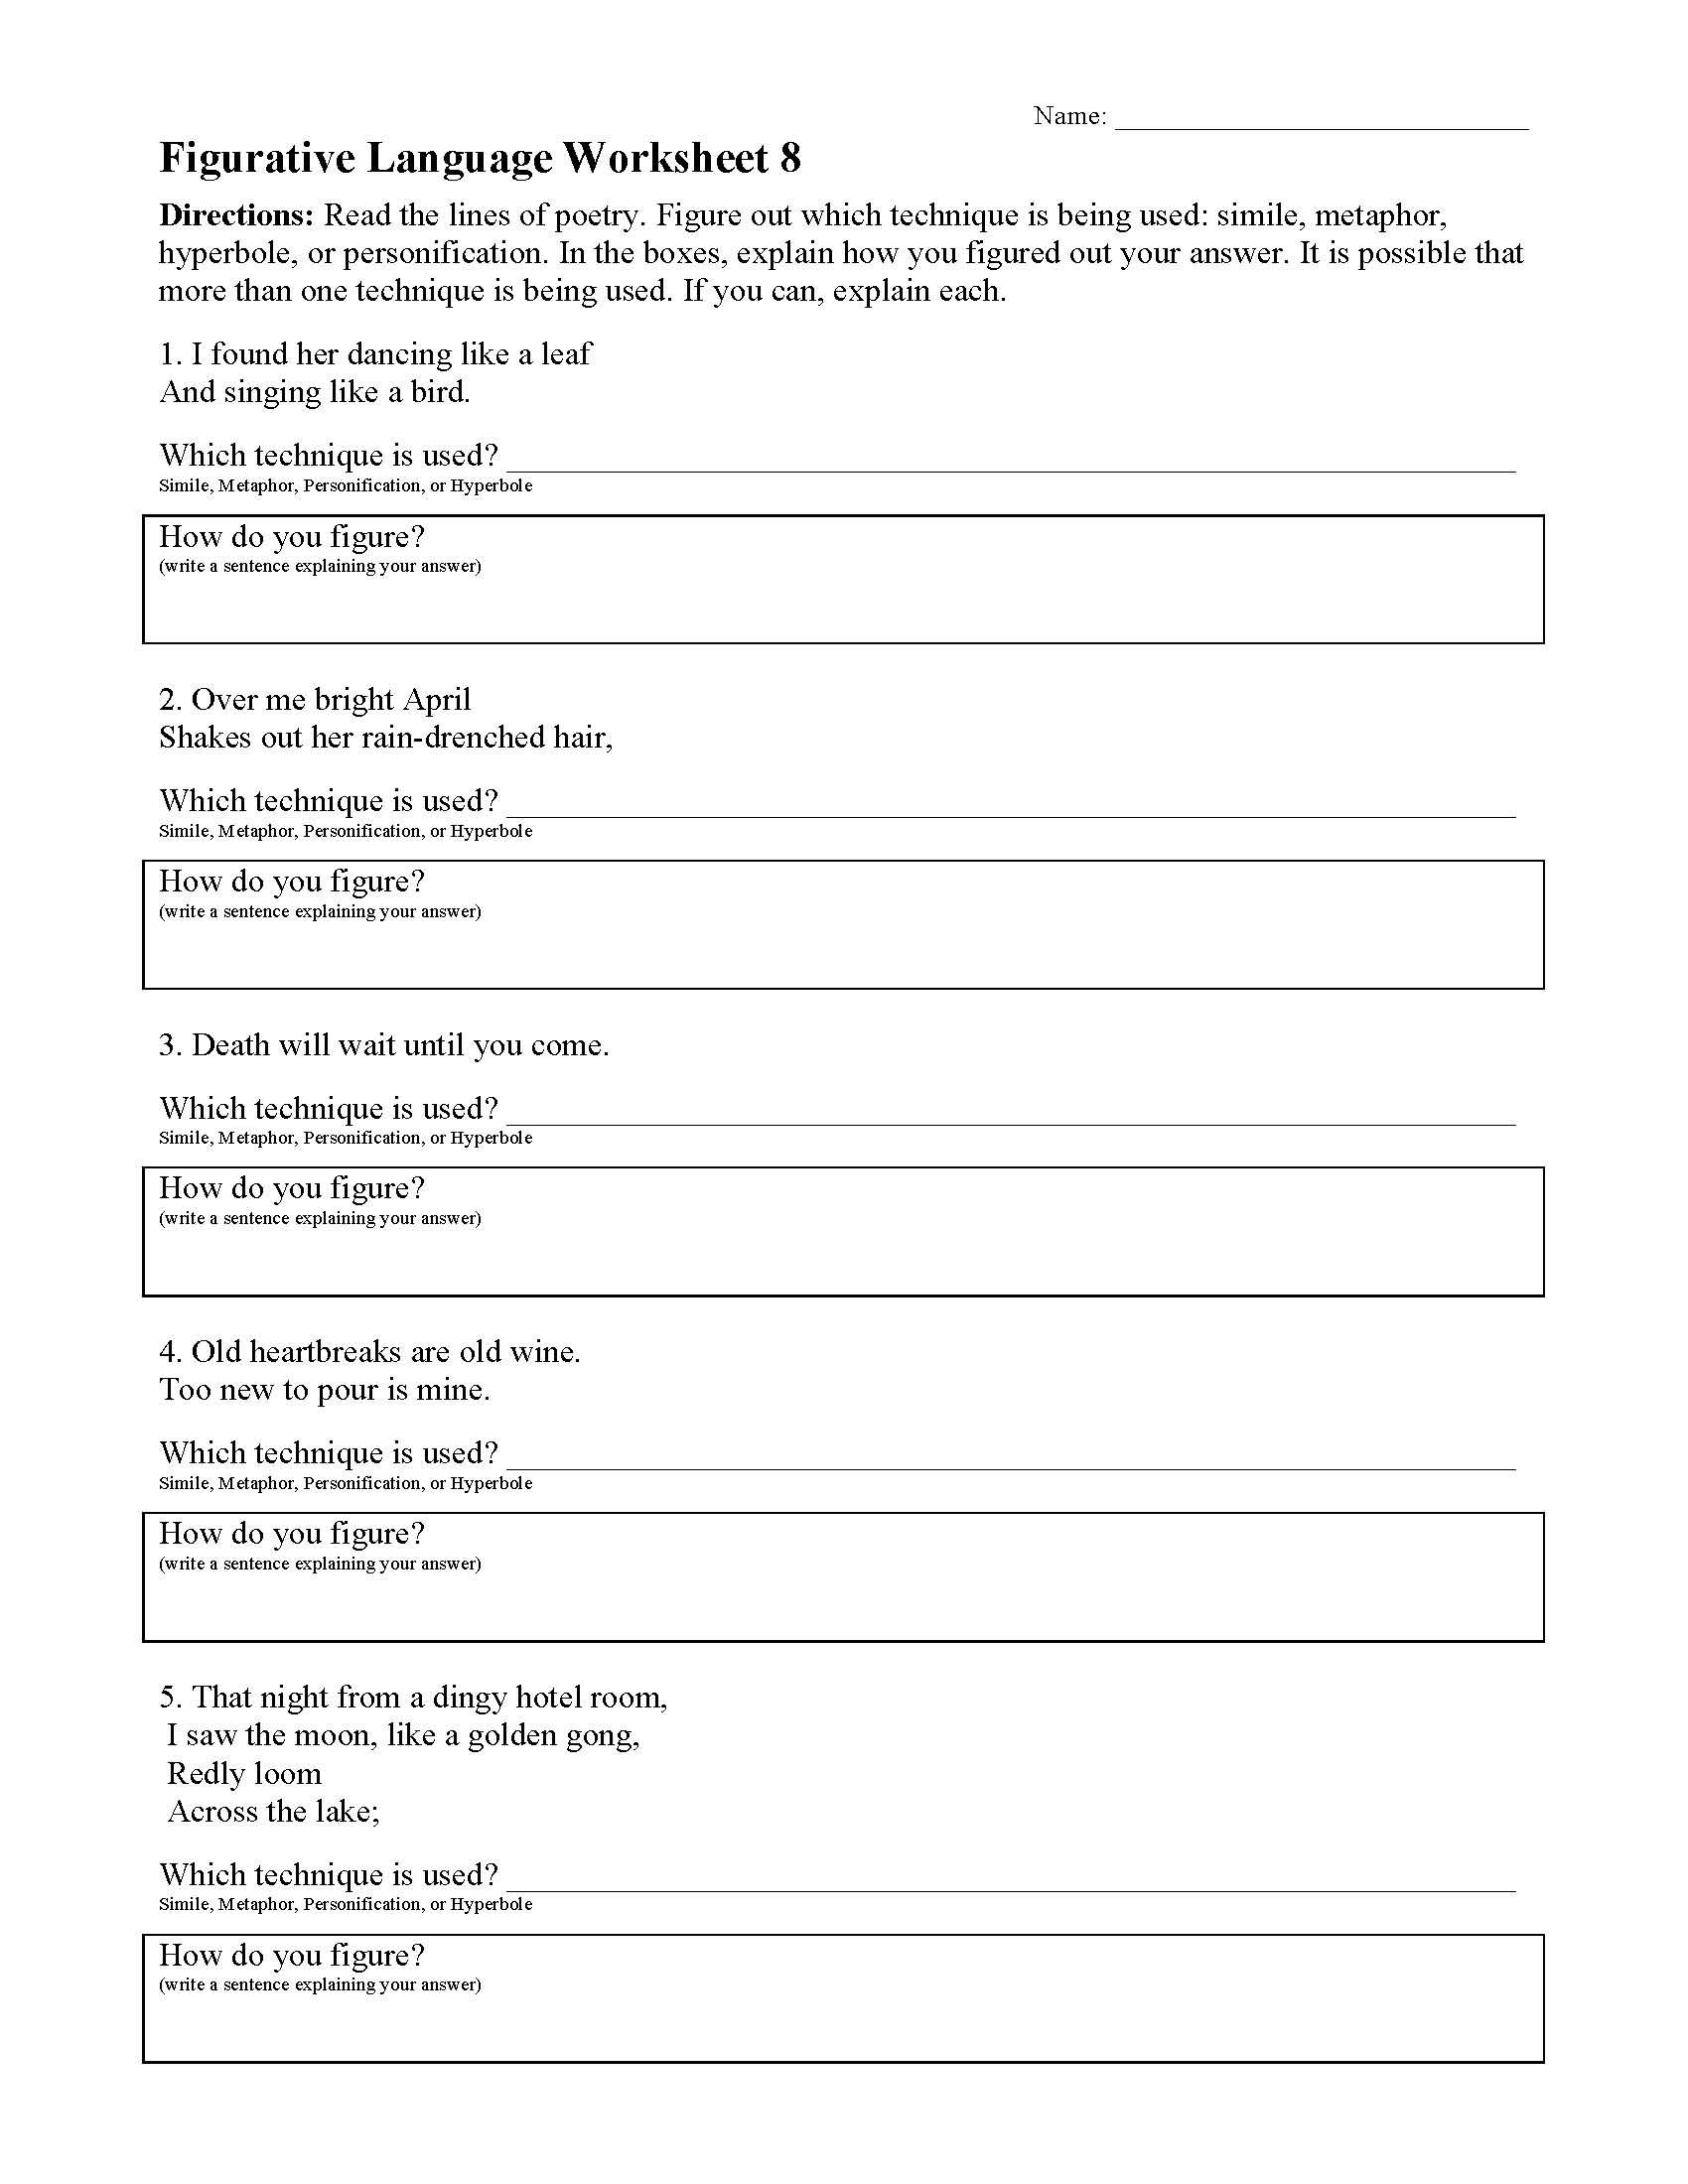 This is a preview image of the Figurative Language Worksheet 8.